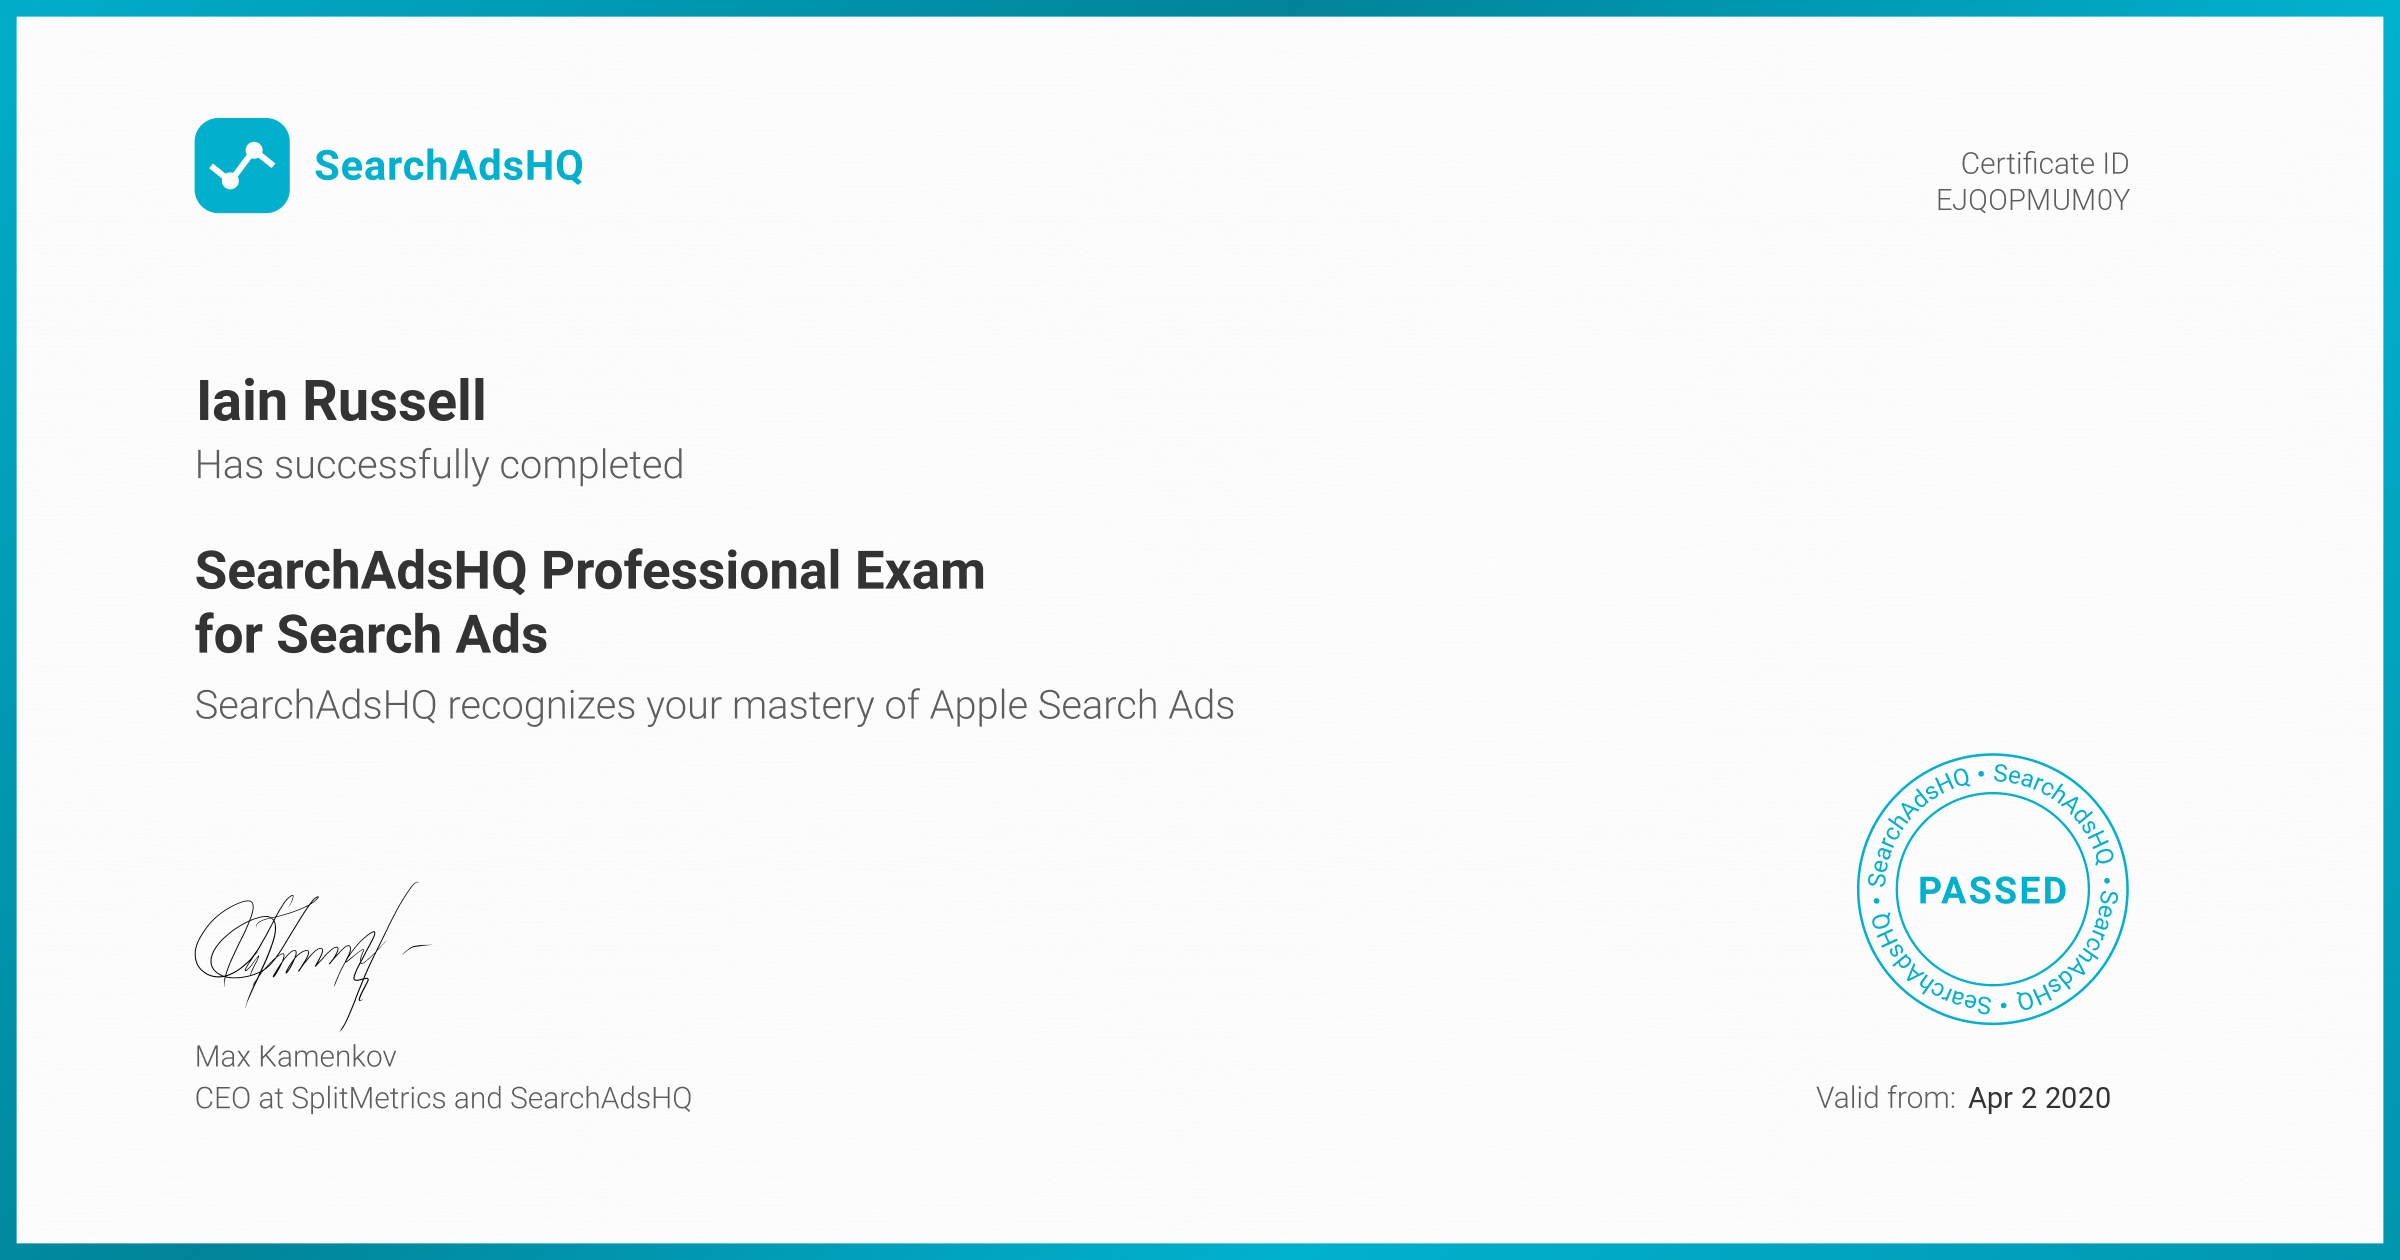 Certificate for Iain Russell | SearchAdsHQ Professional Exam for Search Ads